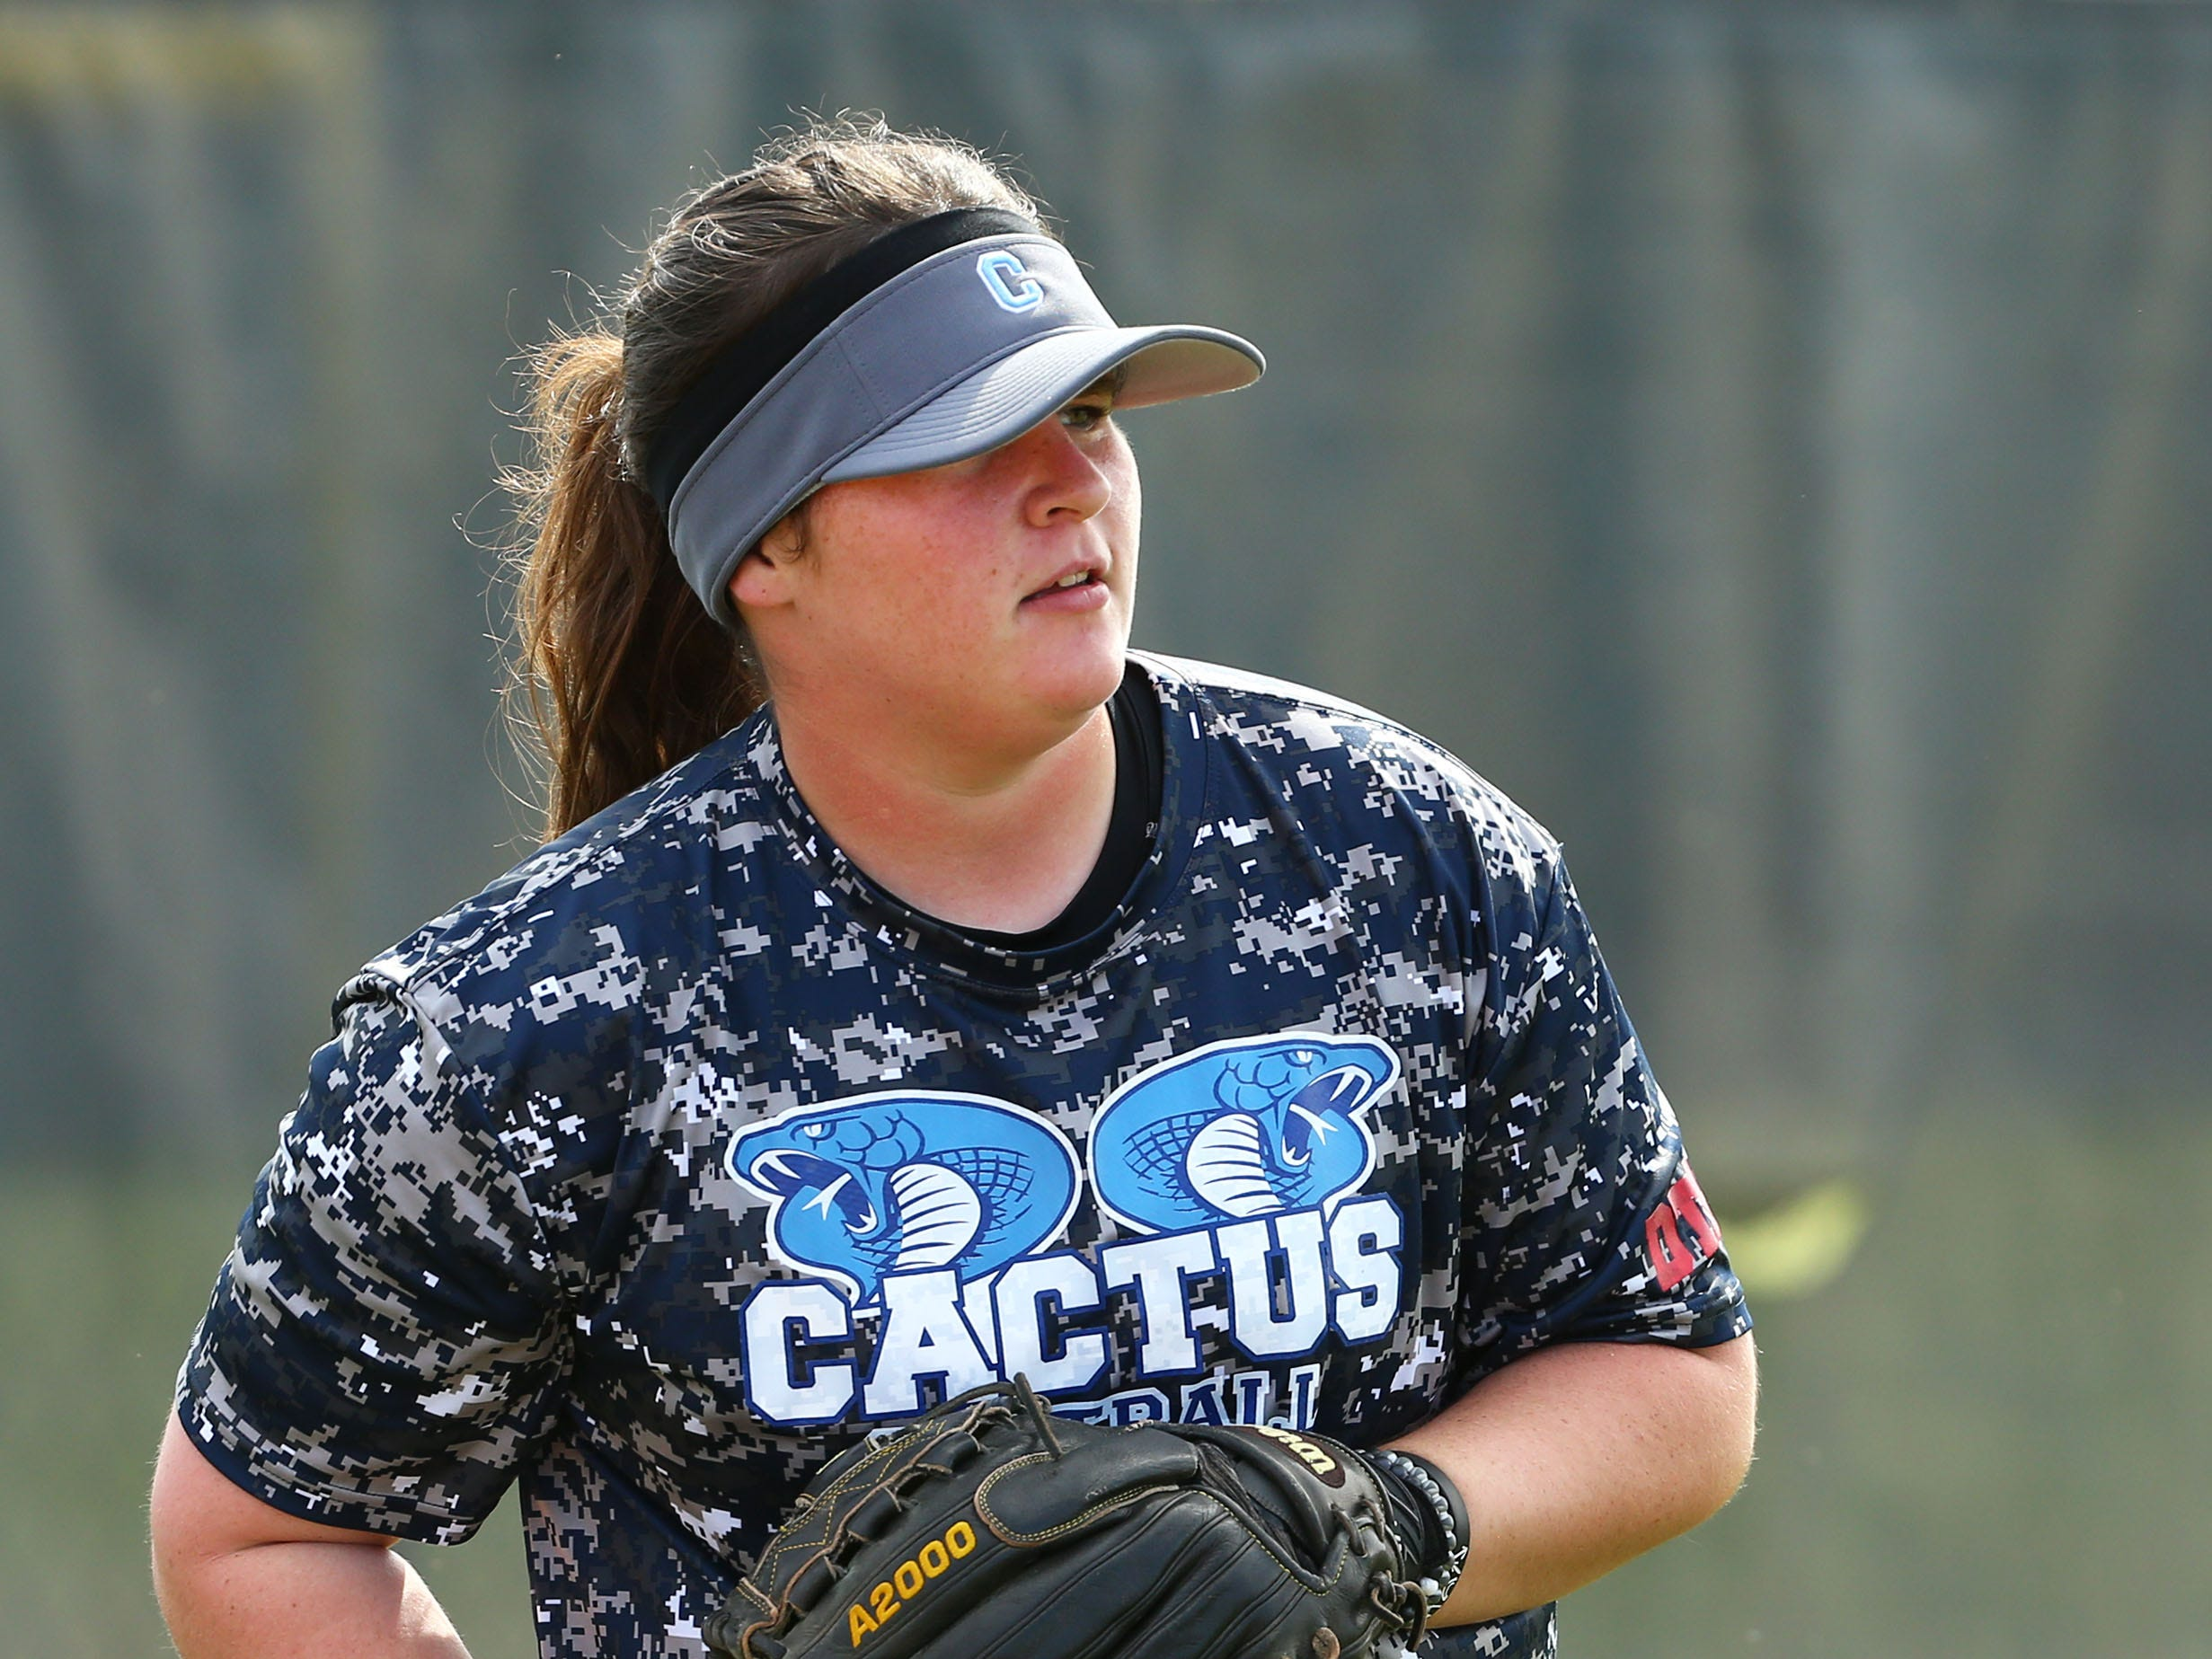 Cactus High softball player McKenna Feringa during practice on Apr. 2, 2019 at Cactus High School in Glendale, Ariz.